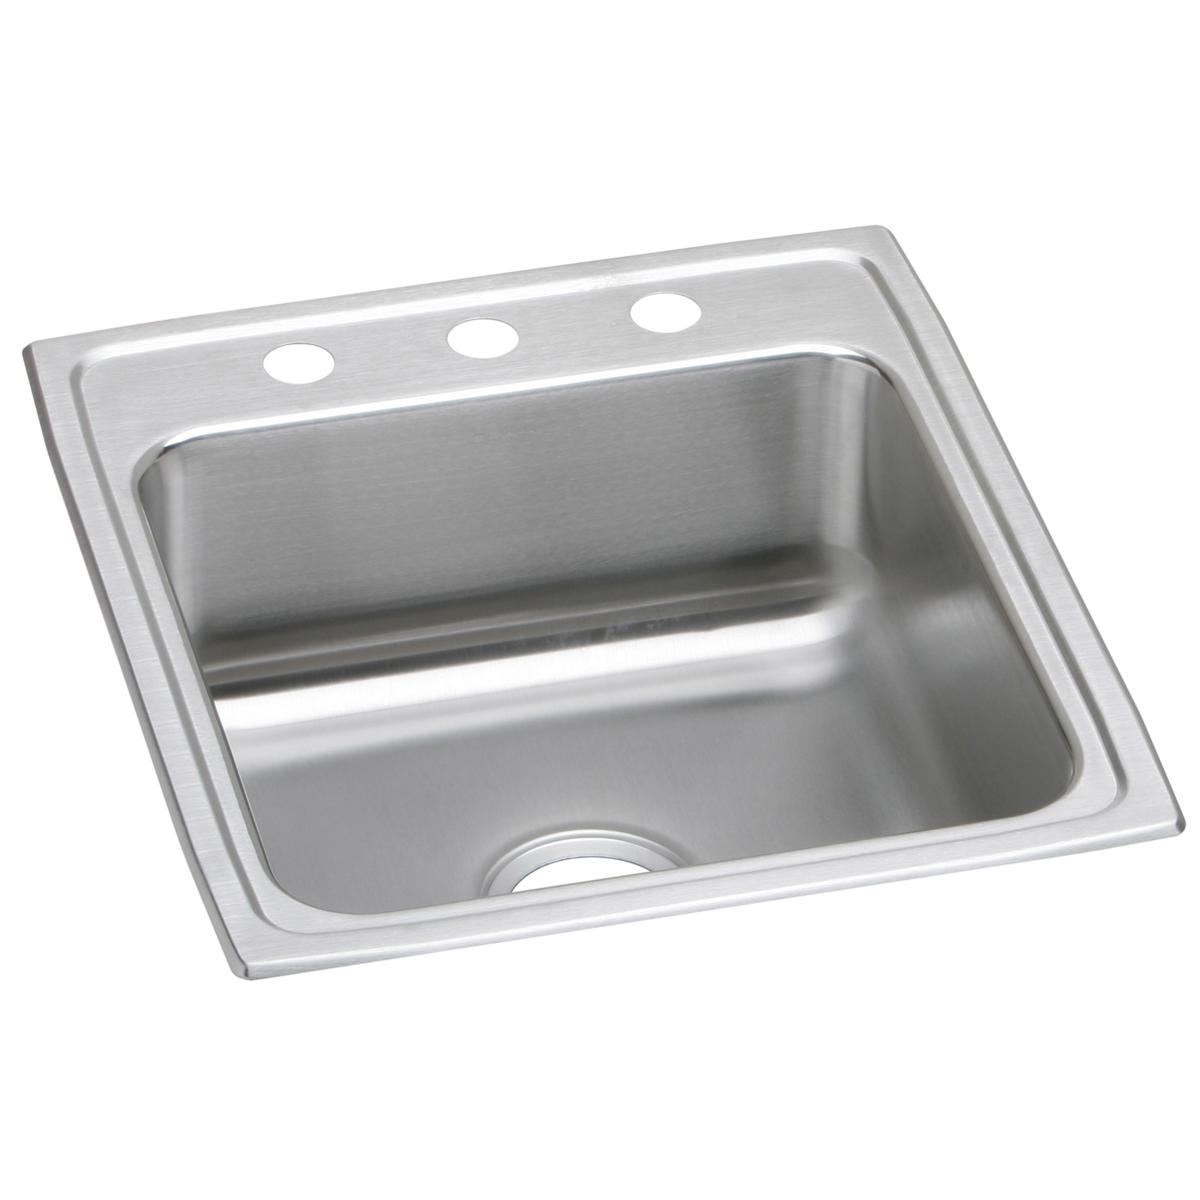 "Elkay Lustertone Classic Stainless Steel 19-1/2"" x 22"" x 6"", Single Bowl Drop-in ADA Sink"